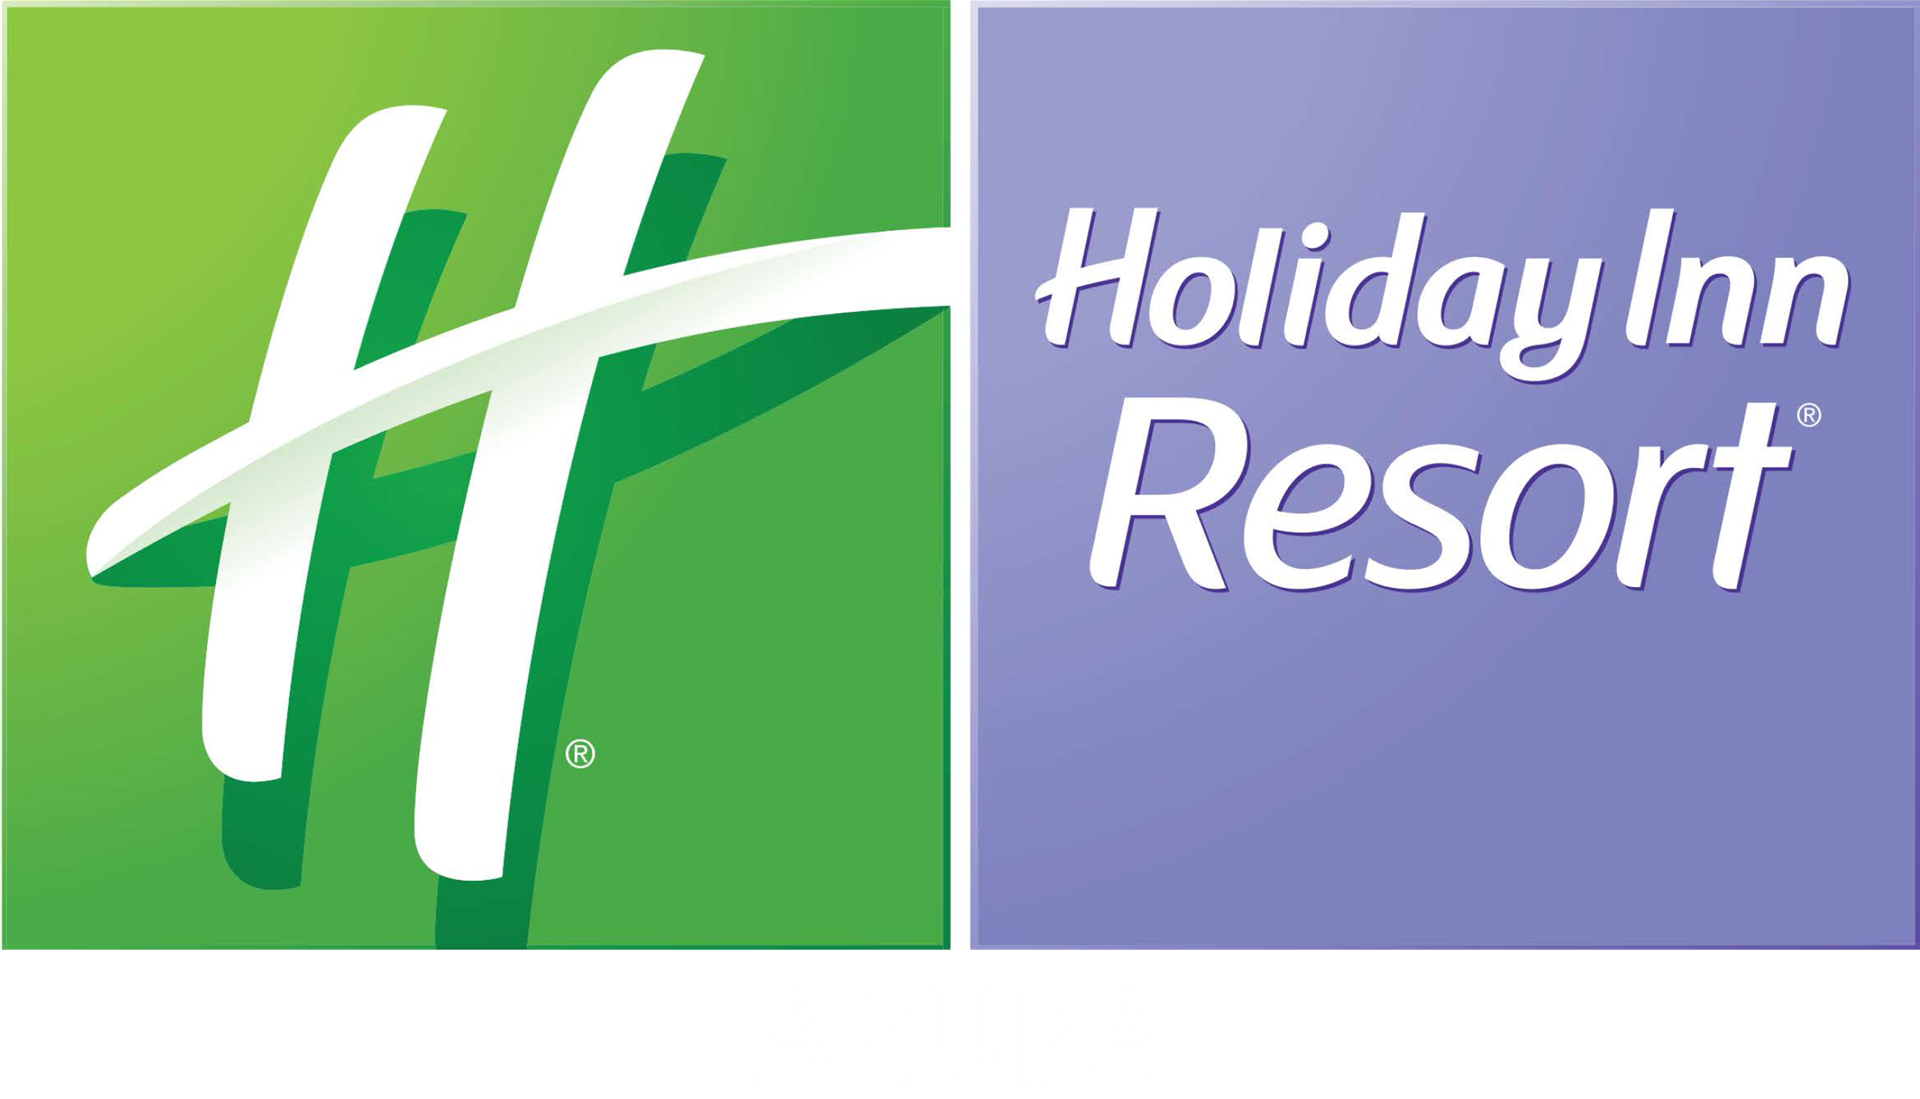 holiday inn resort aruba png logo #6544